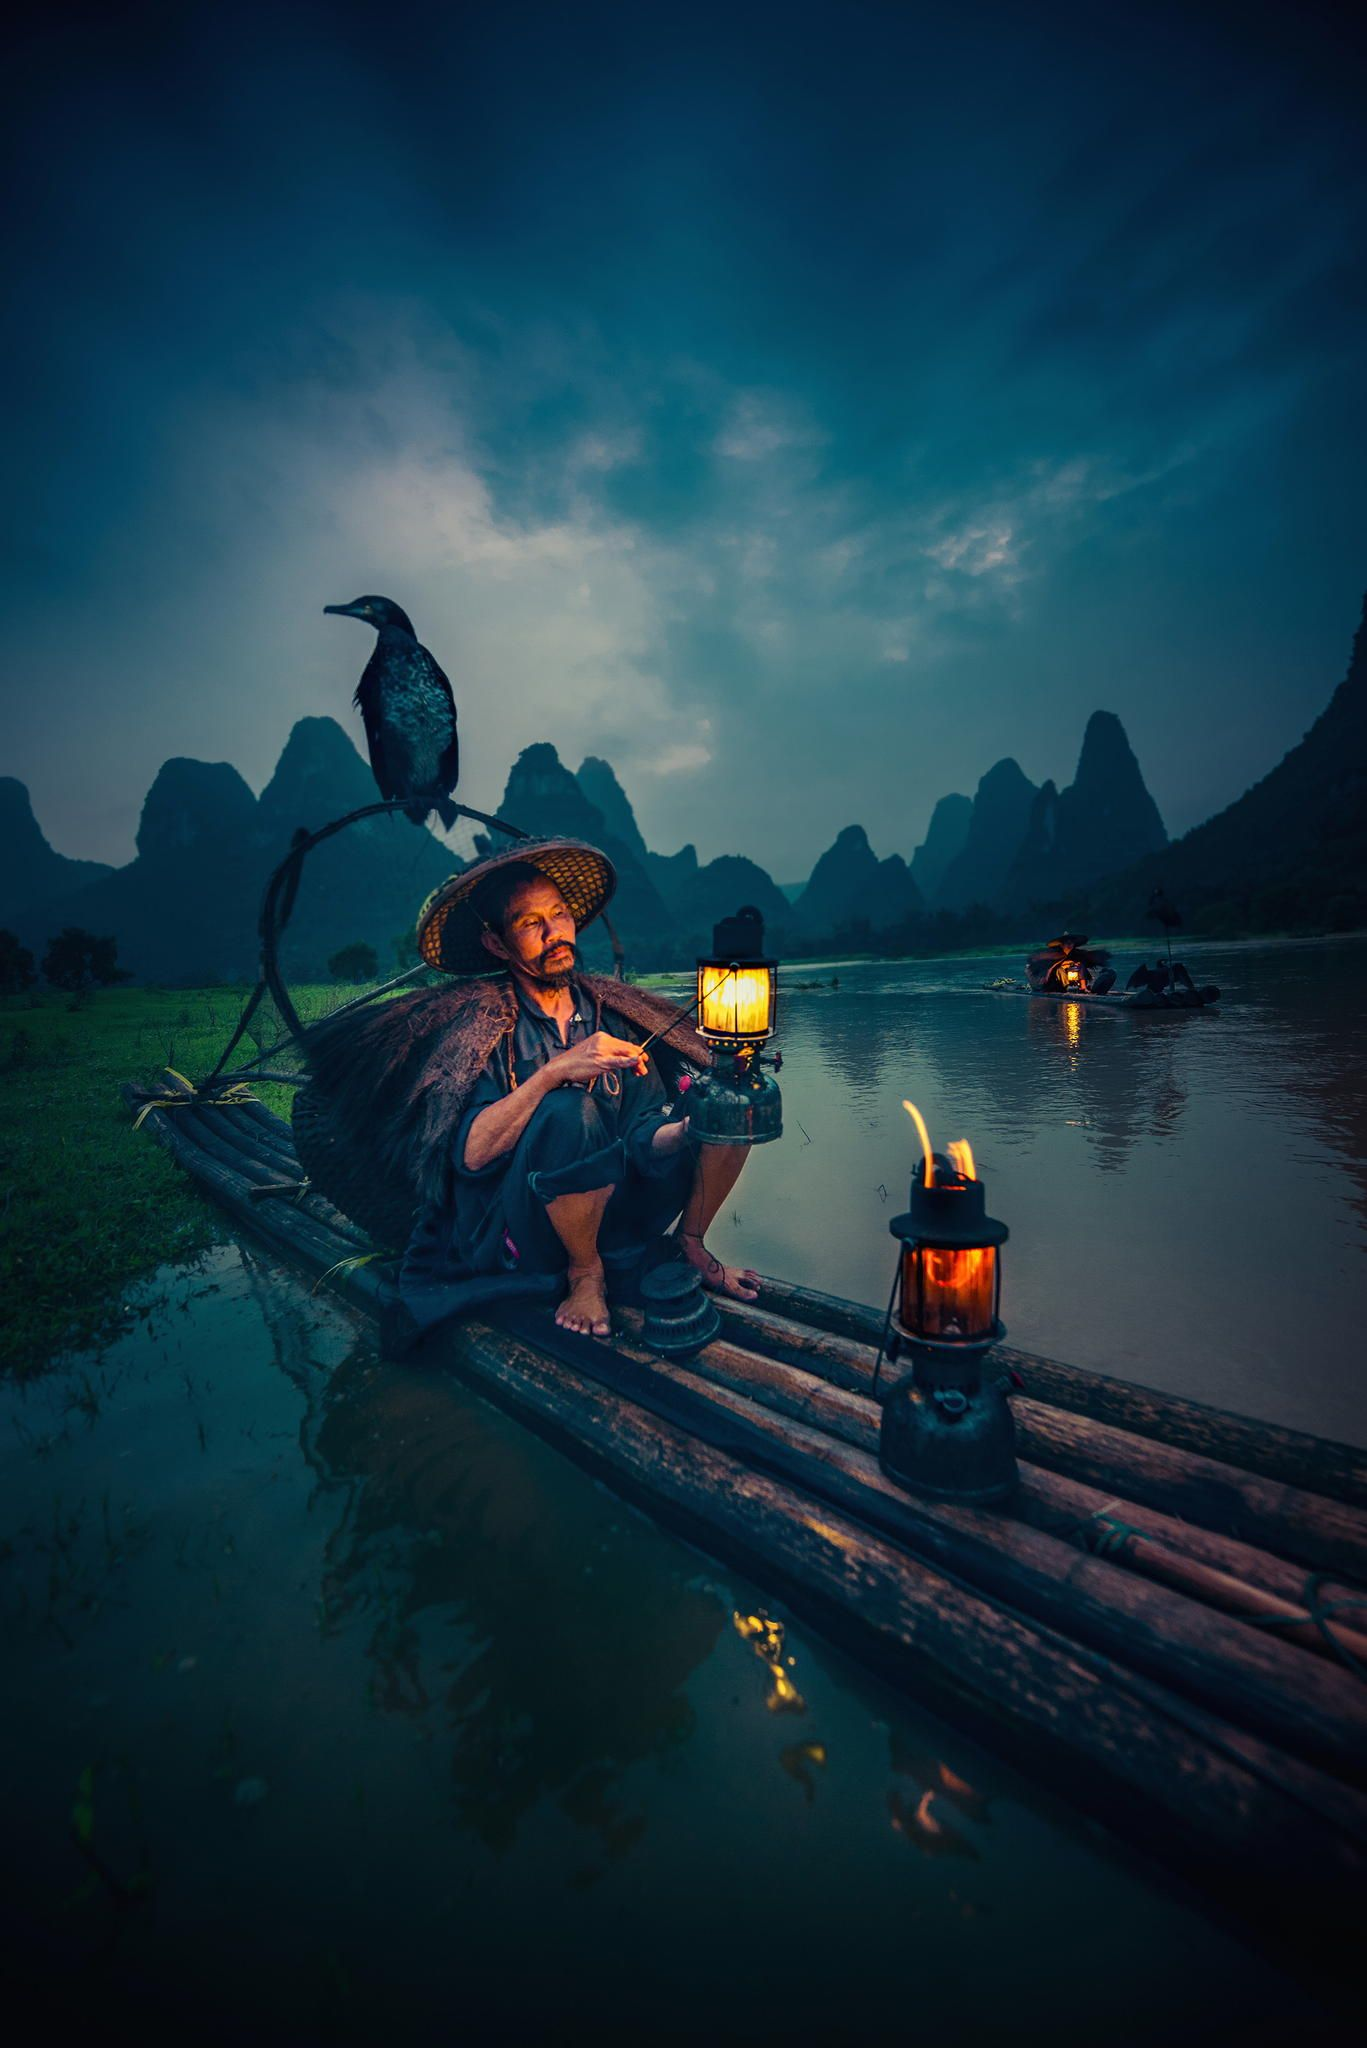 Cormorant Fisherman by Tom Anderson on 500px